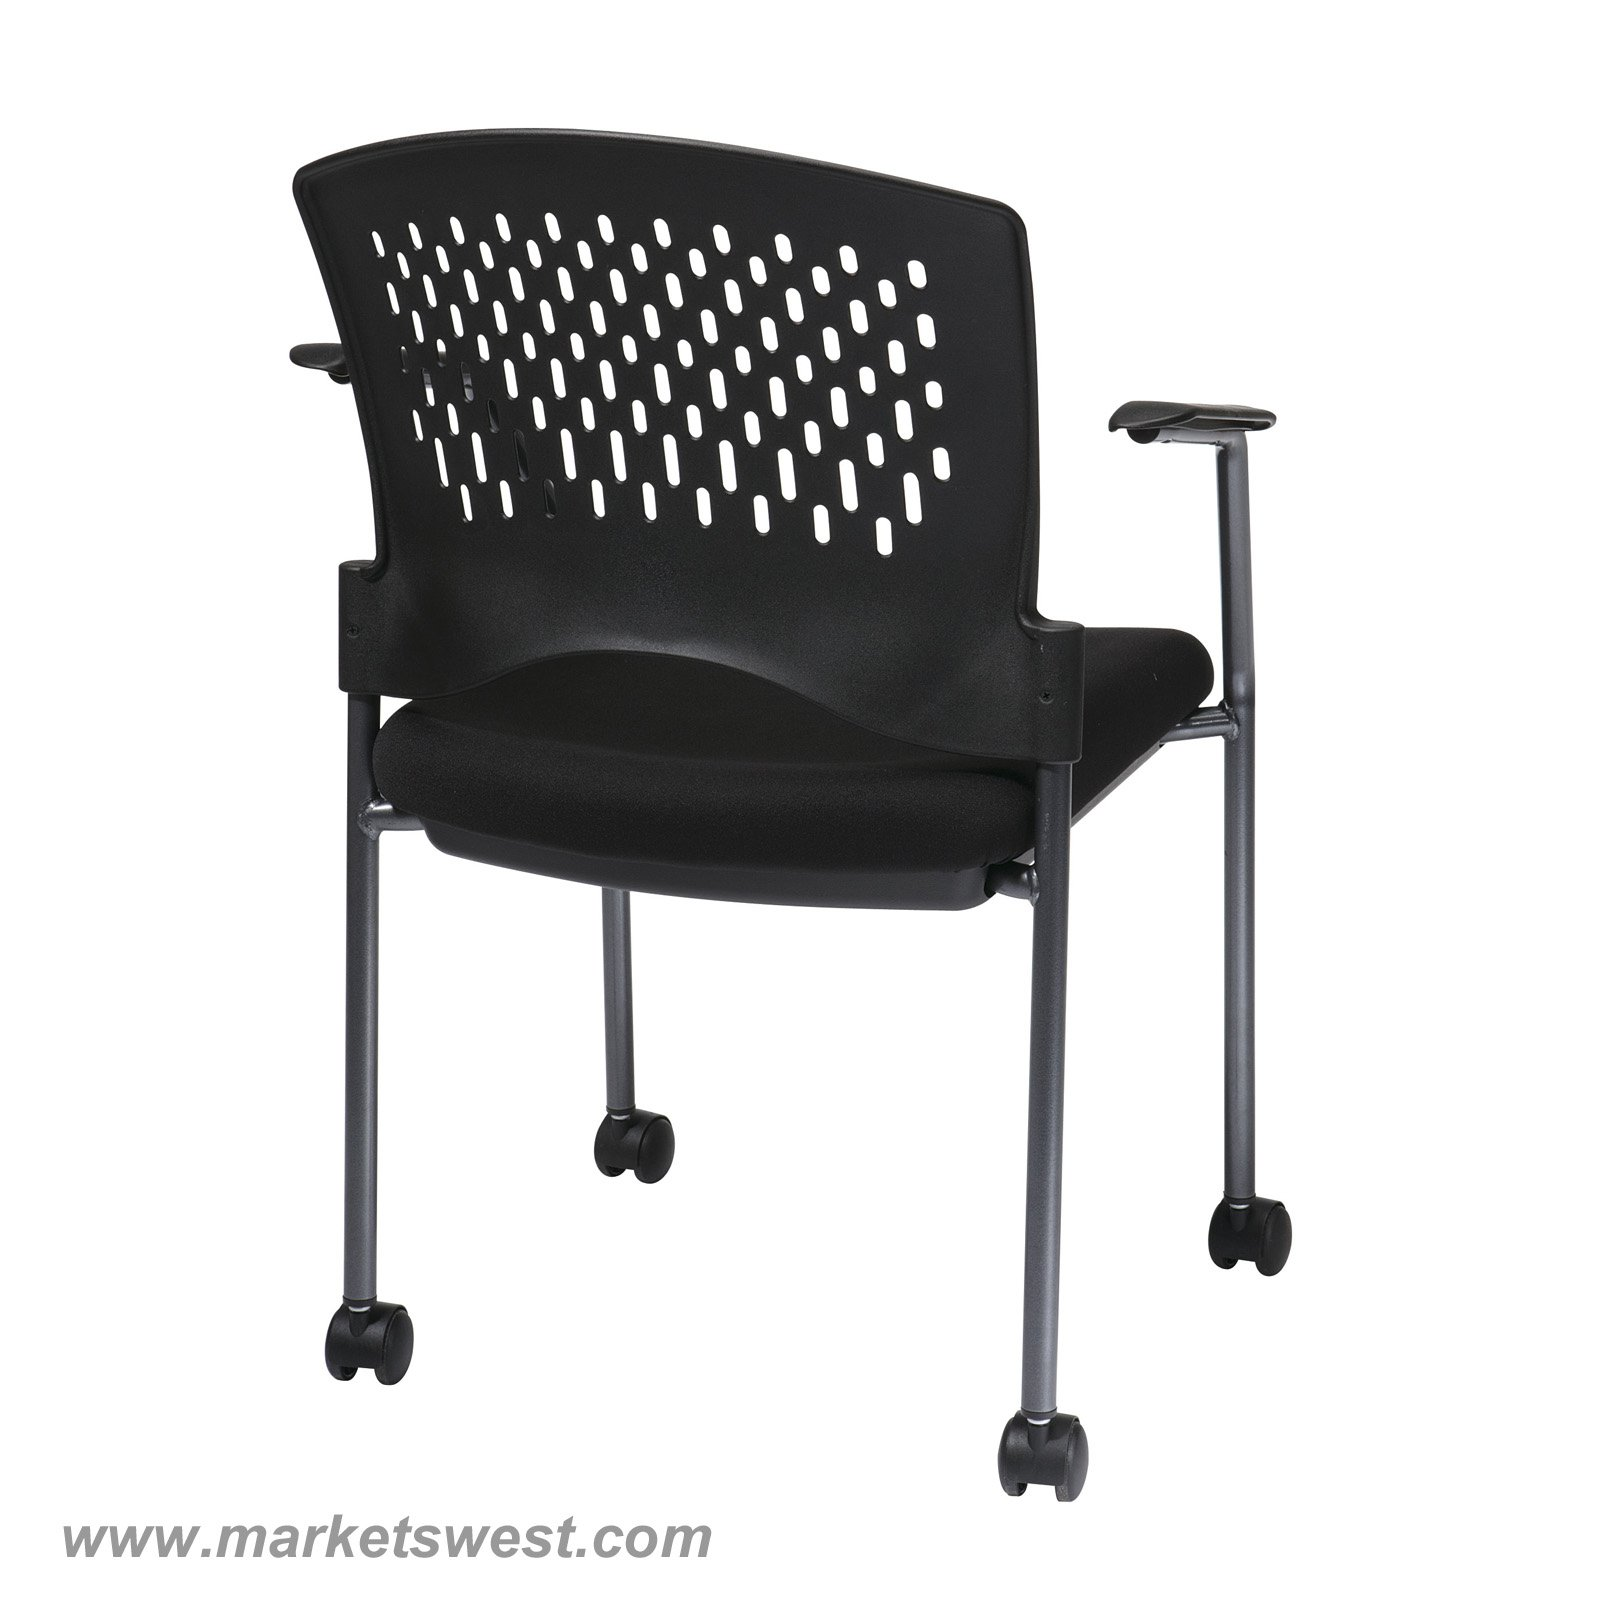 stackable rolling chairs barcelona replica pro line ii titanium finish black visitors chair